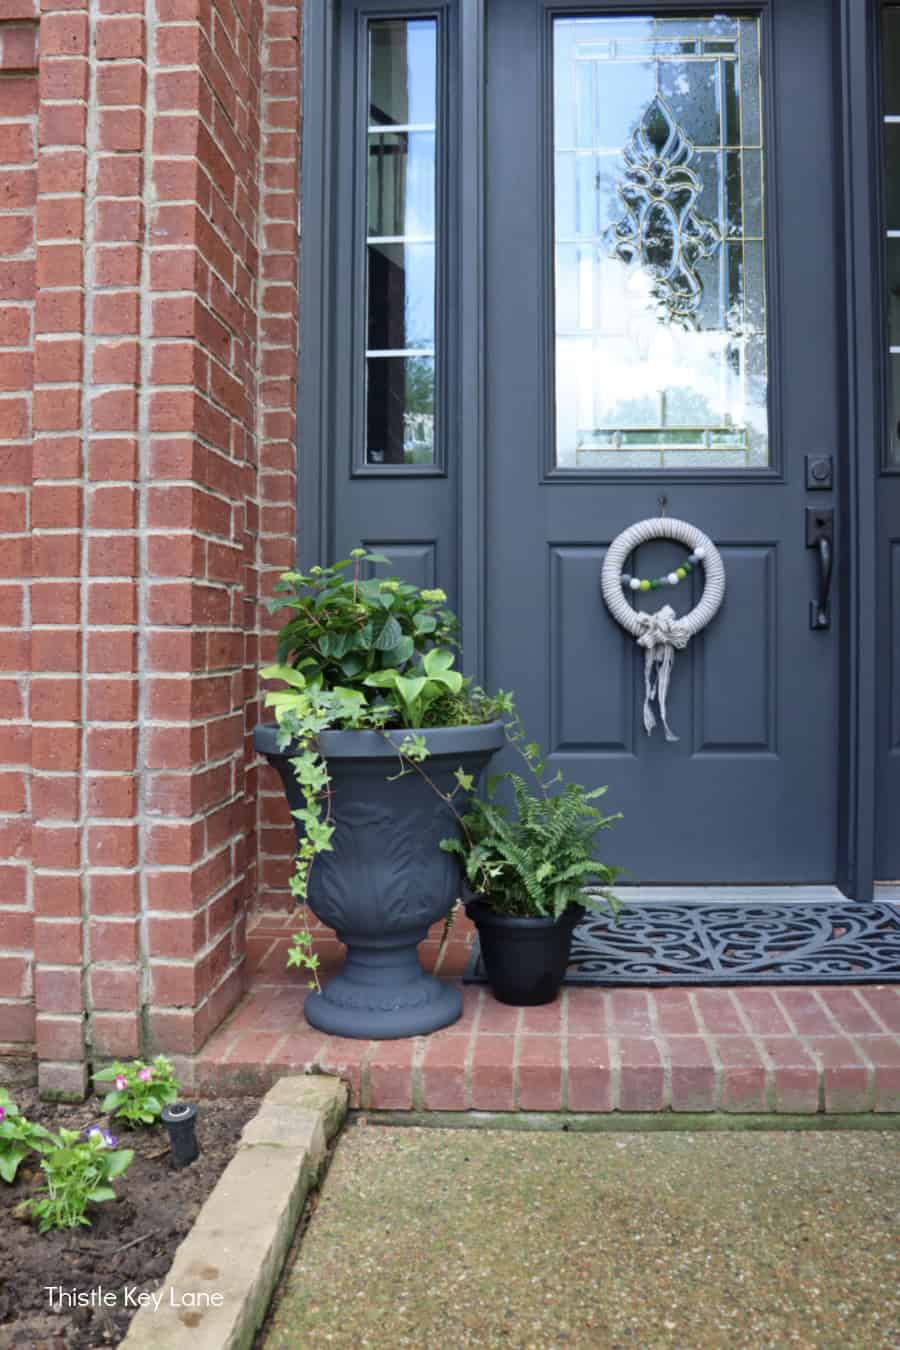 Containers of plants on brick porch with gray door. Updating A Porch Planter For Spring.